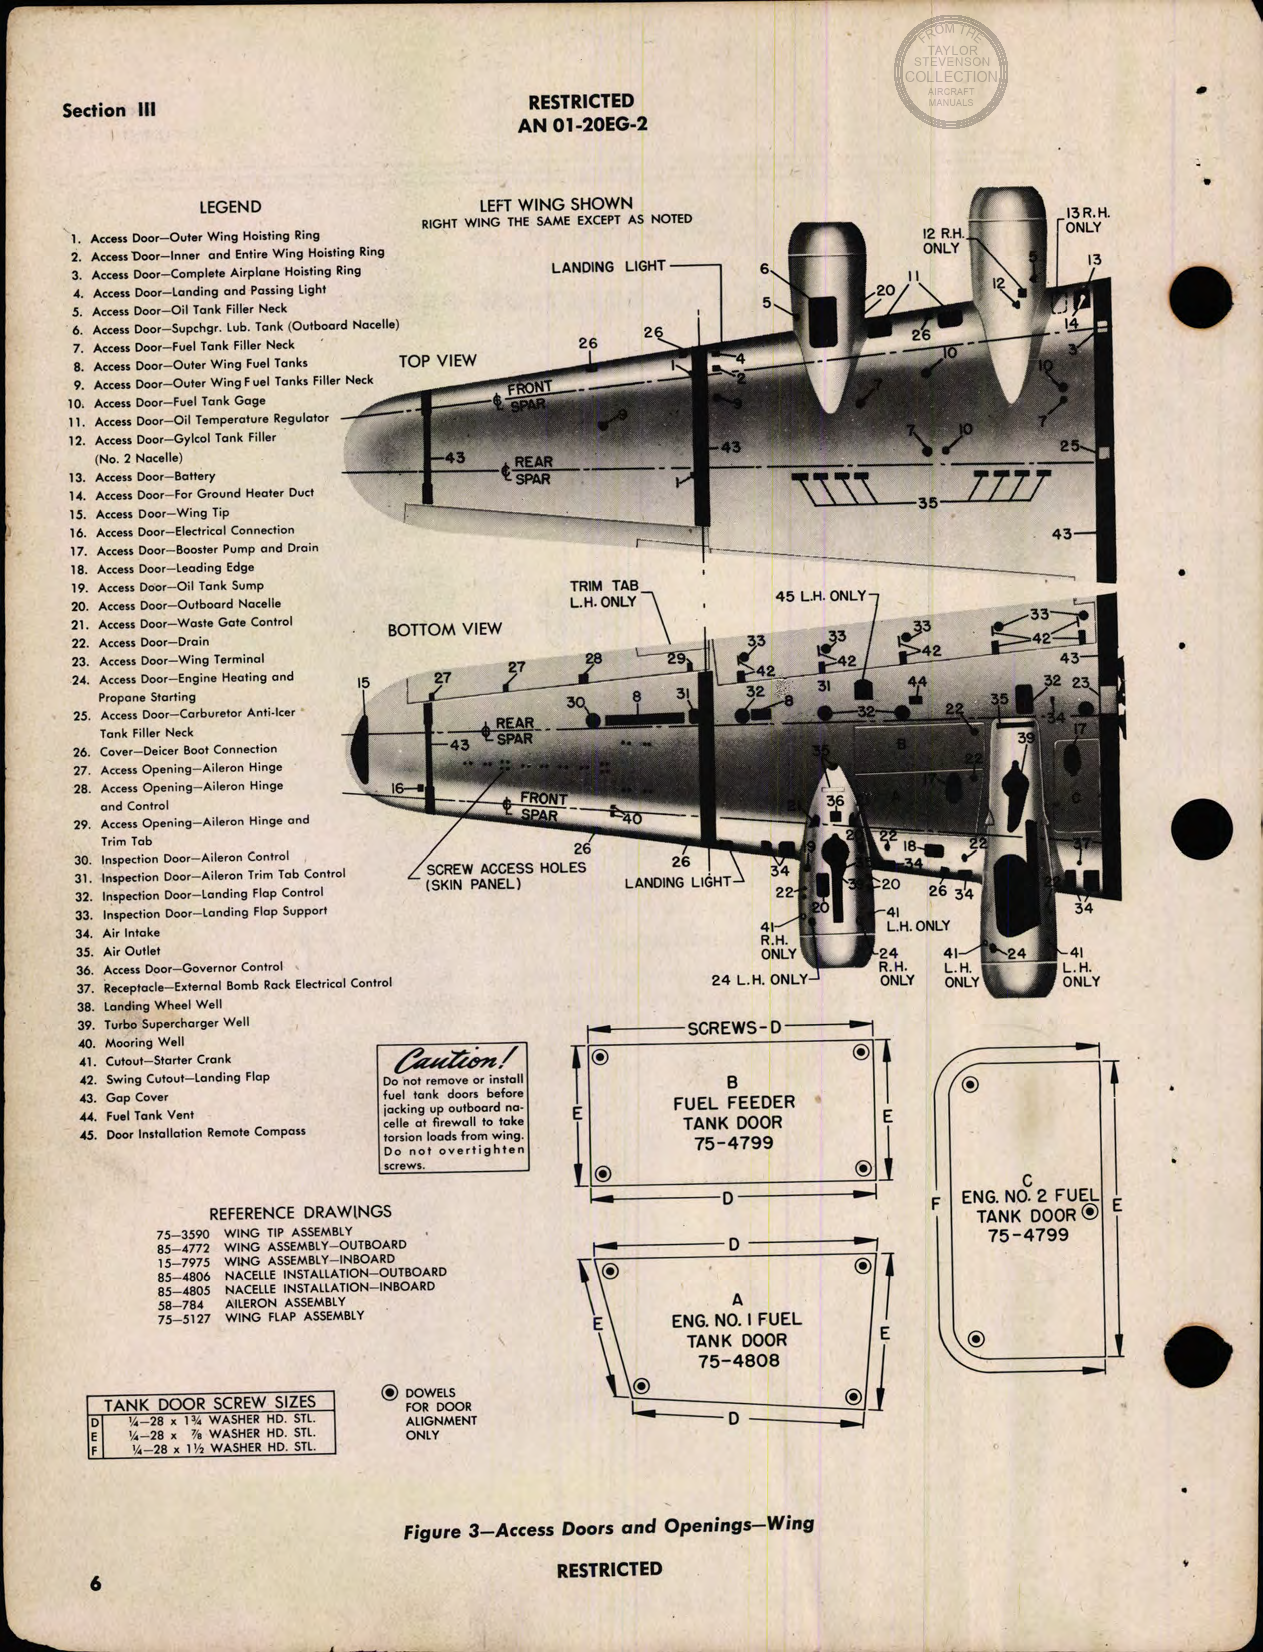 Sample page 8 from AirCorps Library document: Erection and Maintenance Instructions for B-17G (Fortress III) Airplanes